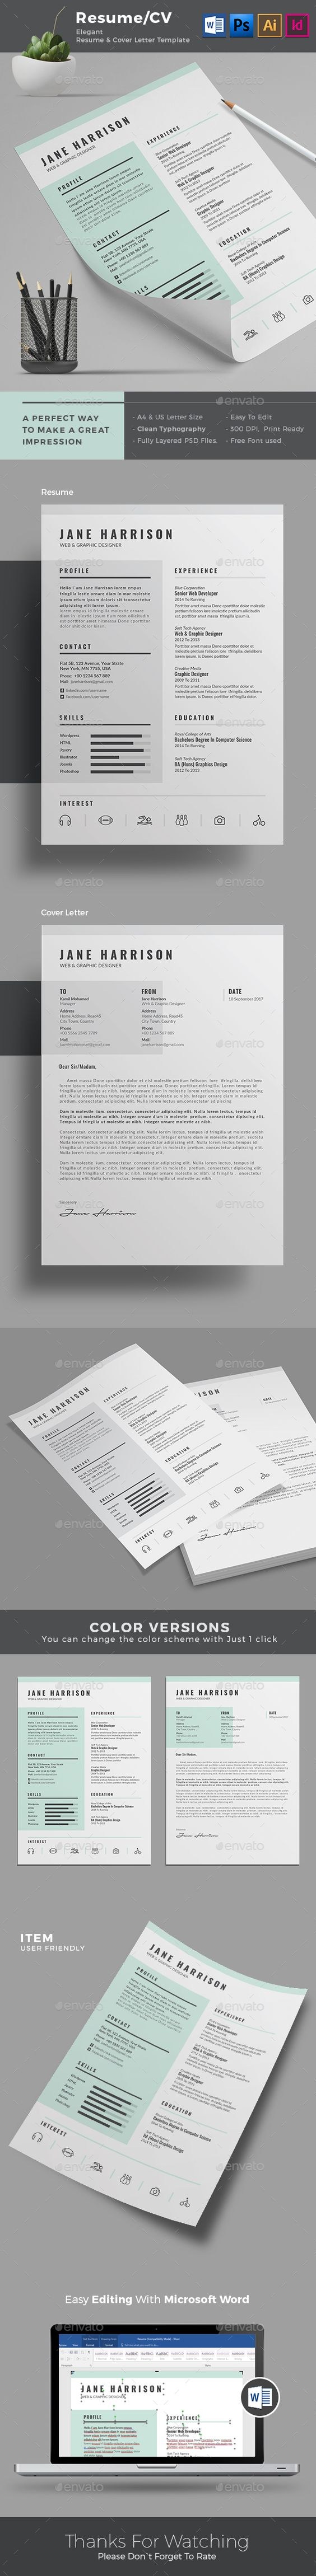 resume indesign template download indesign resume template a4